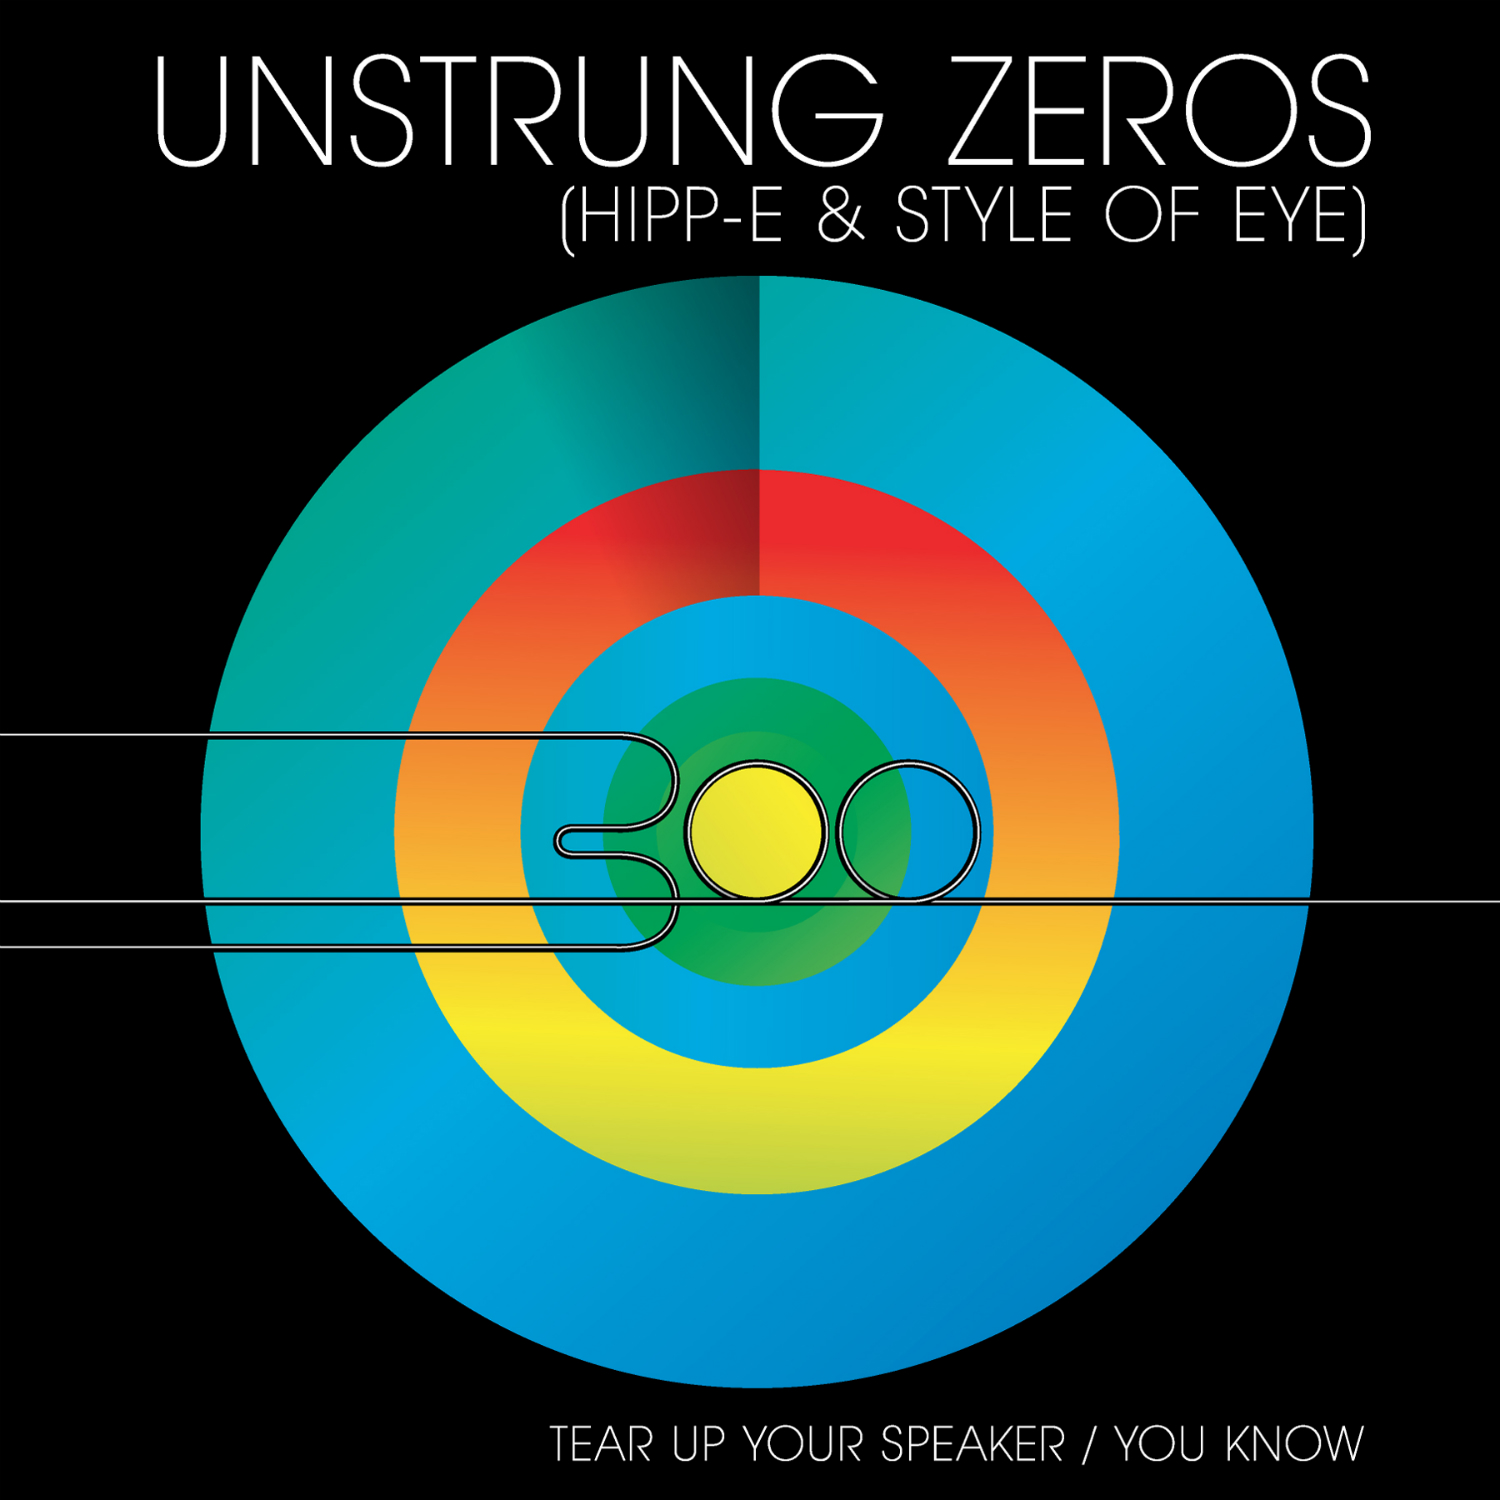 Unstrung Zeros - Tear Up Your Speaker/You Know